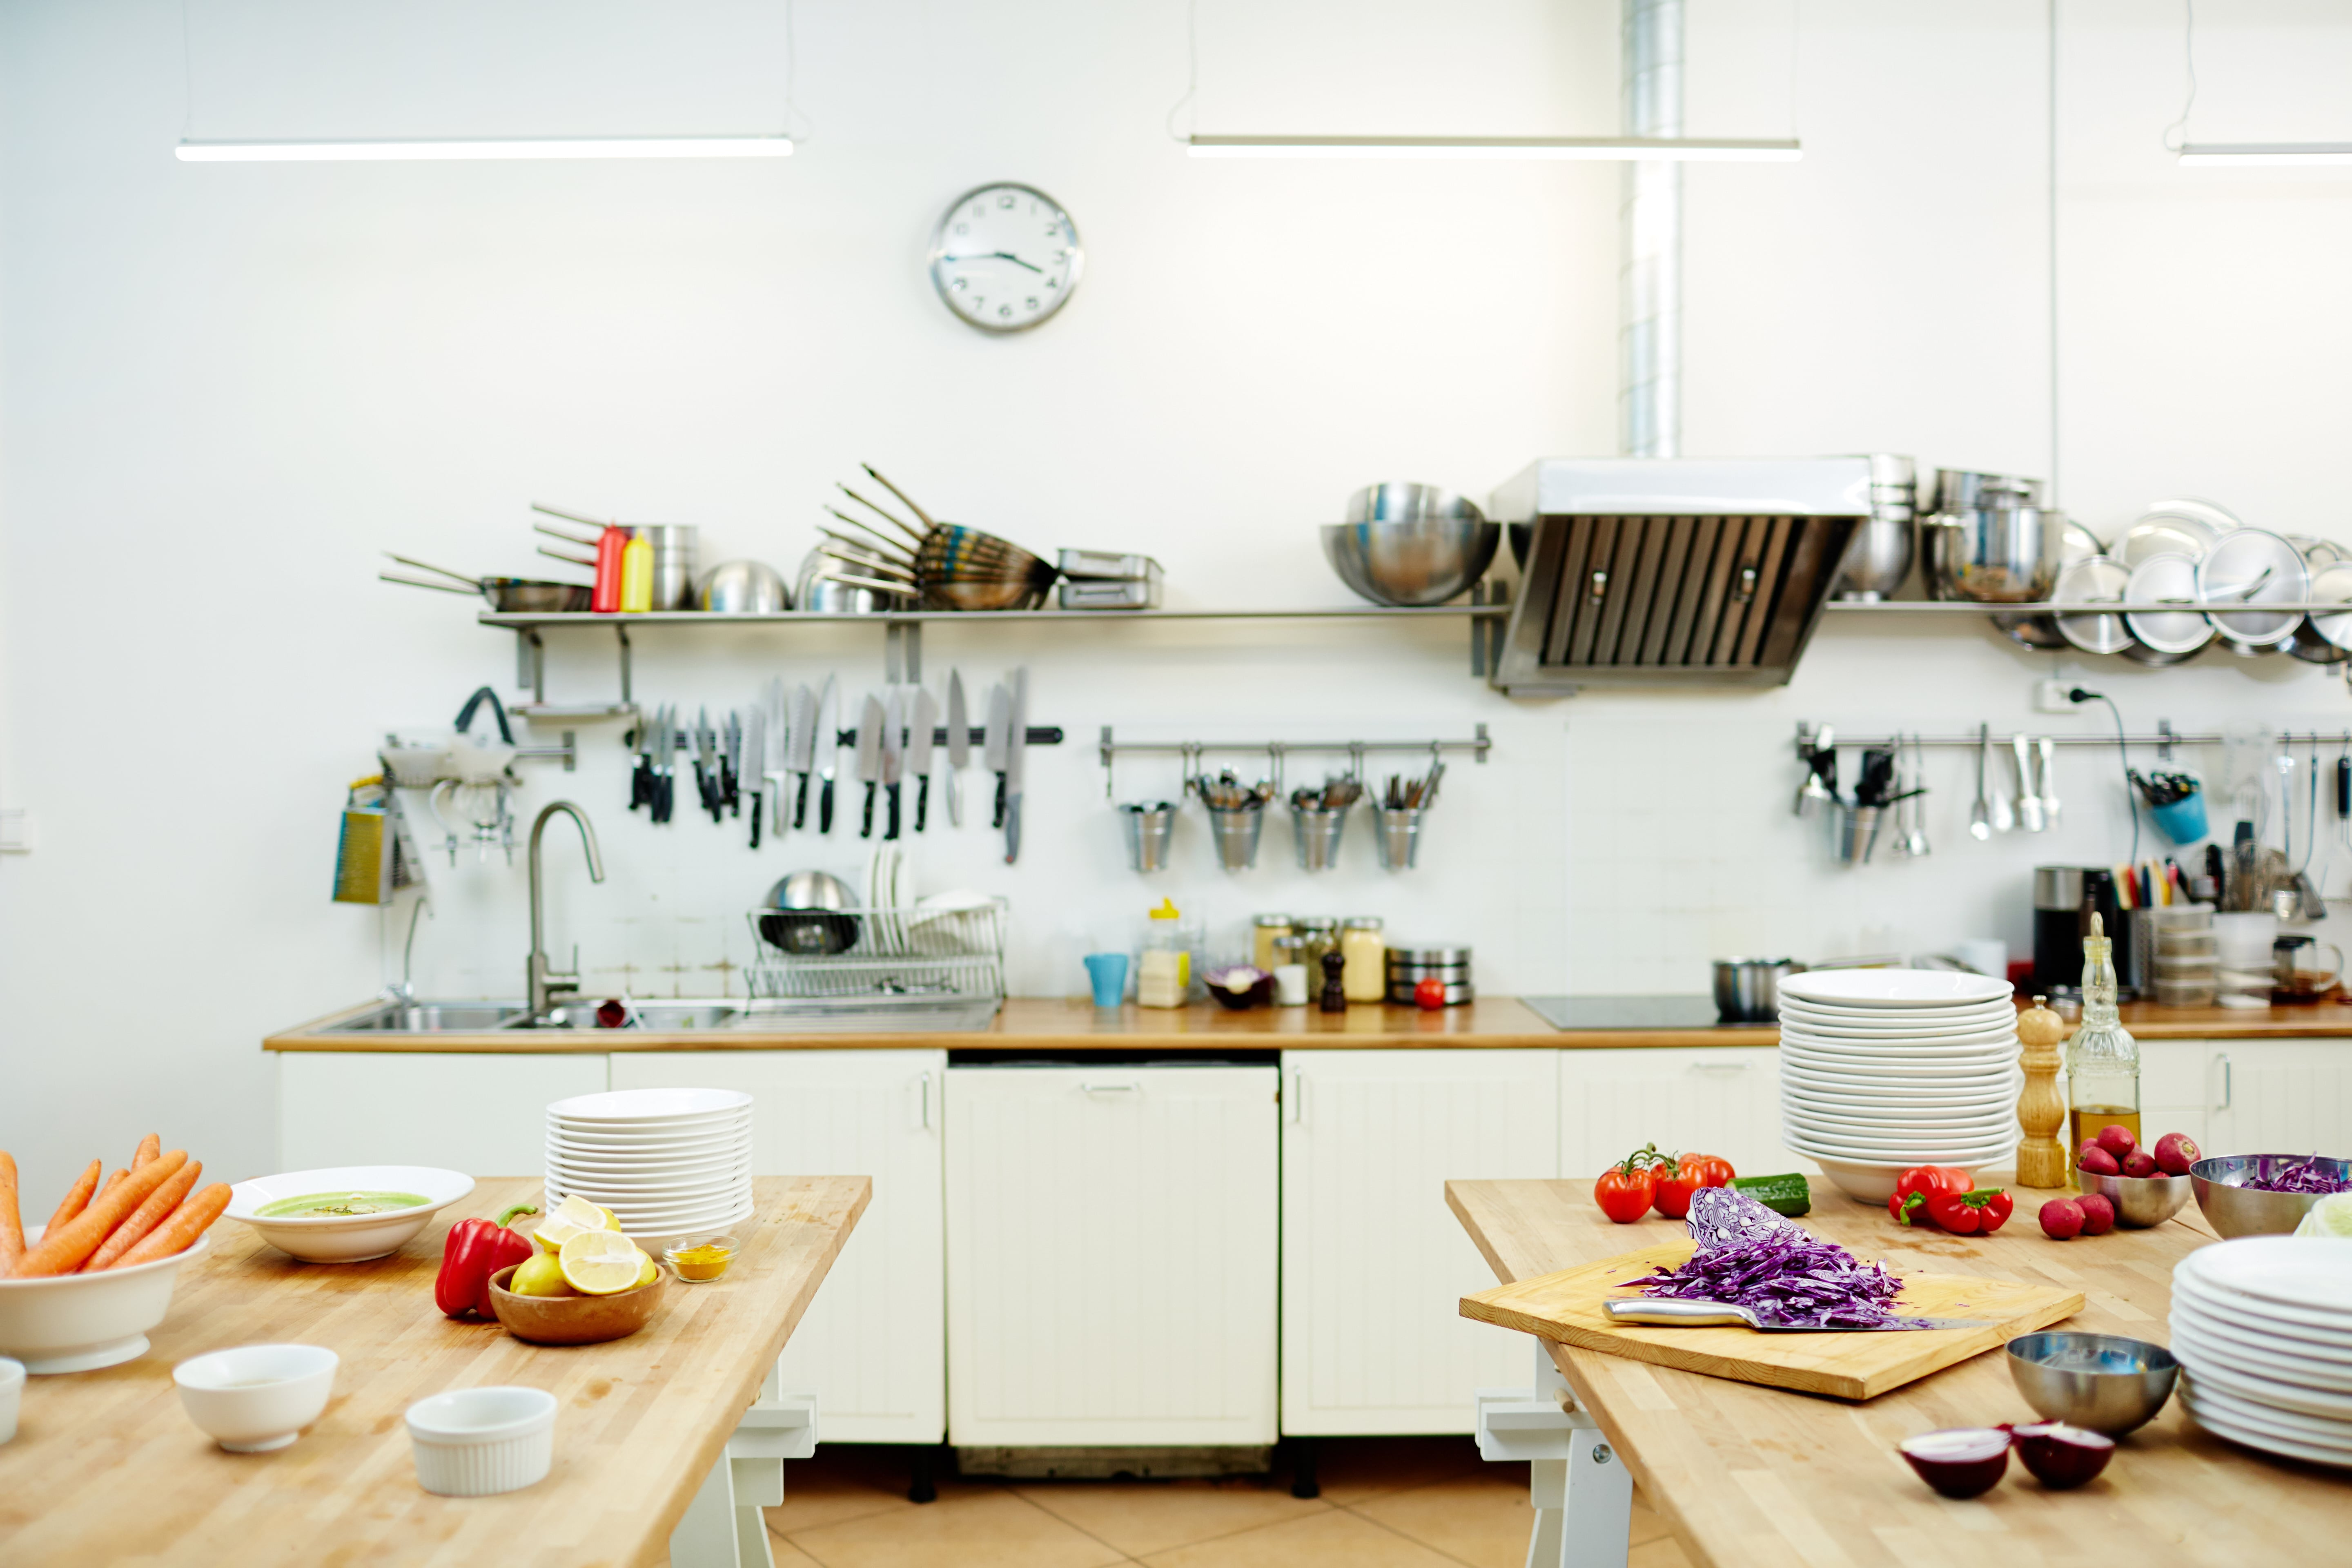 Your Restaurant Kitchen is capable of so much more